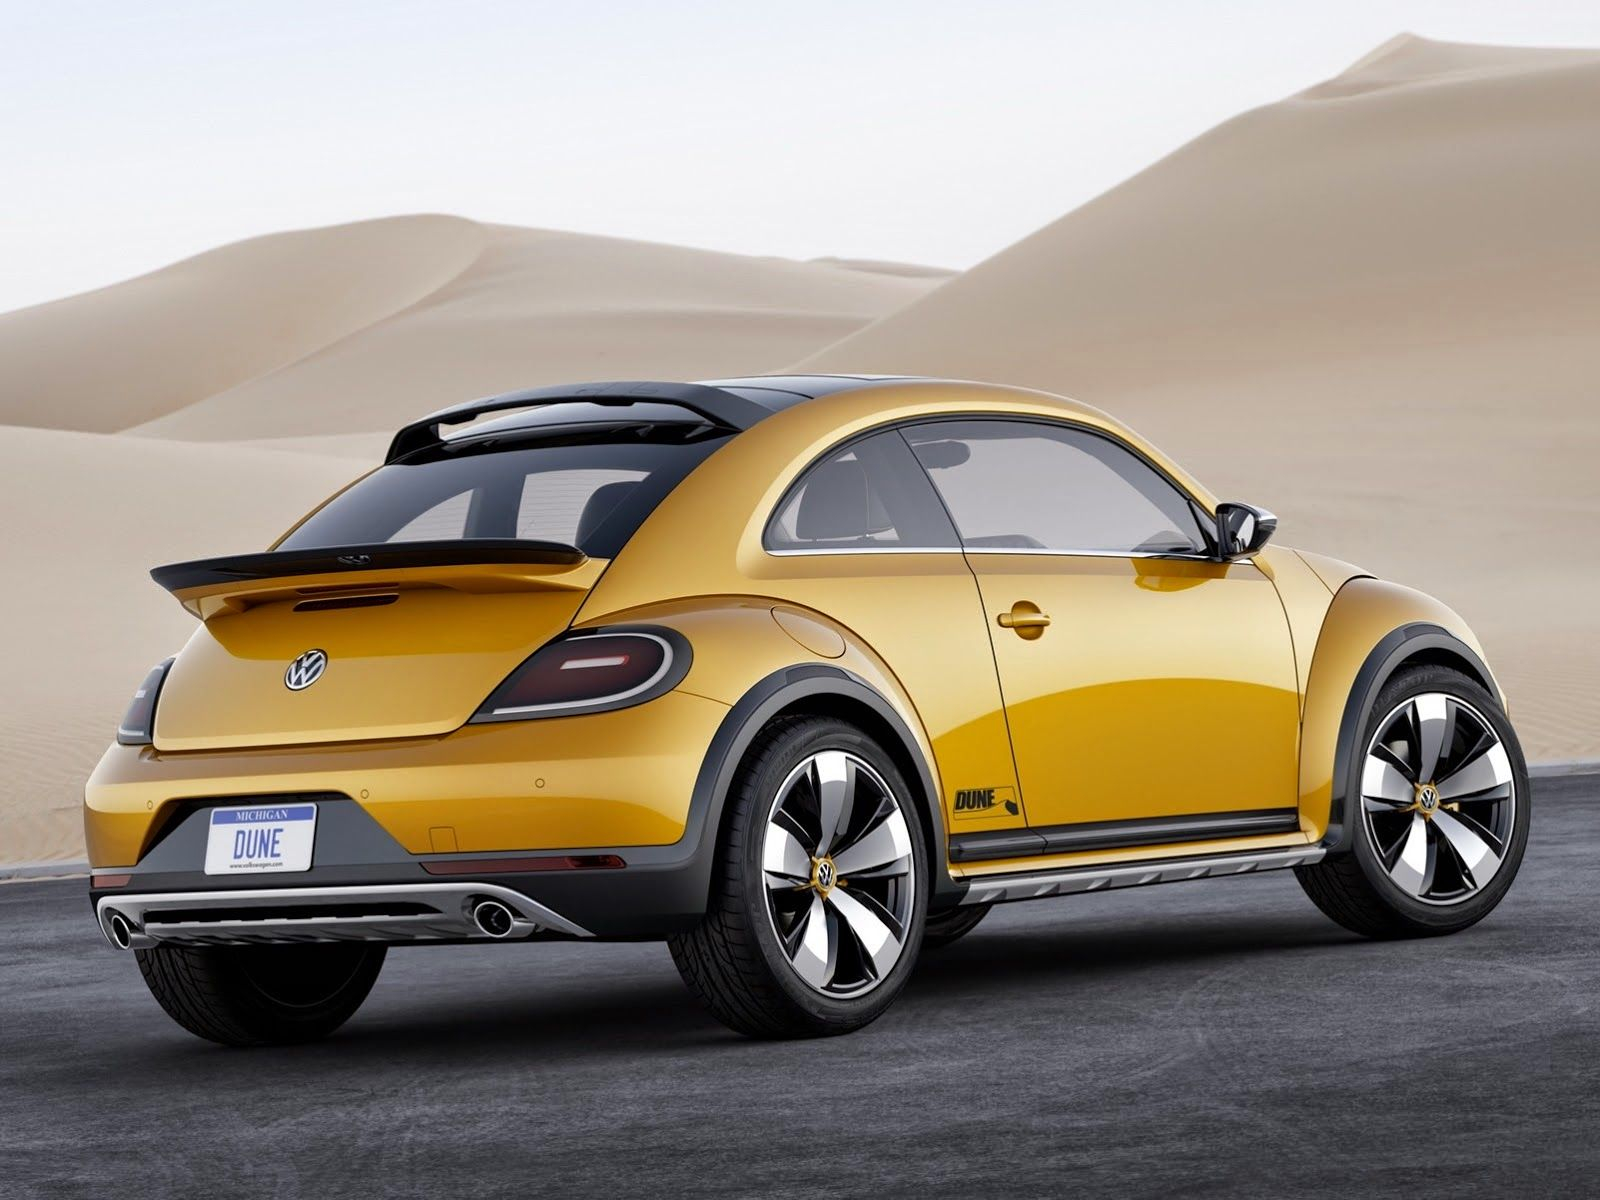 33 New 2020 Vw Beetle Dune Spy Shoot